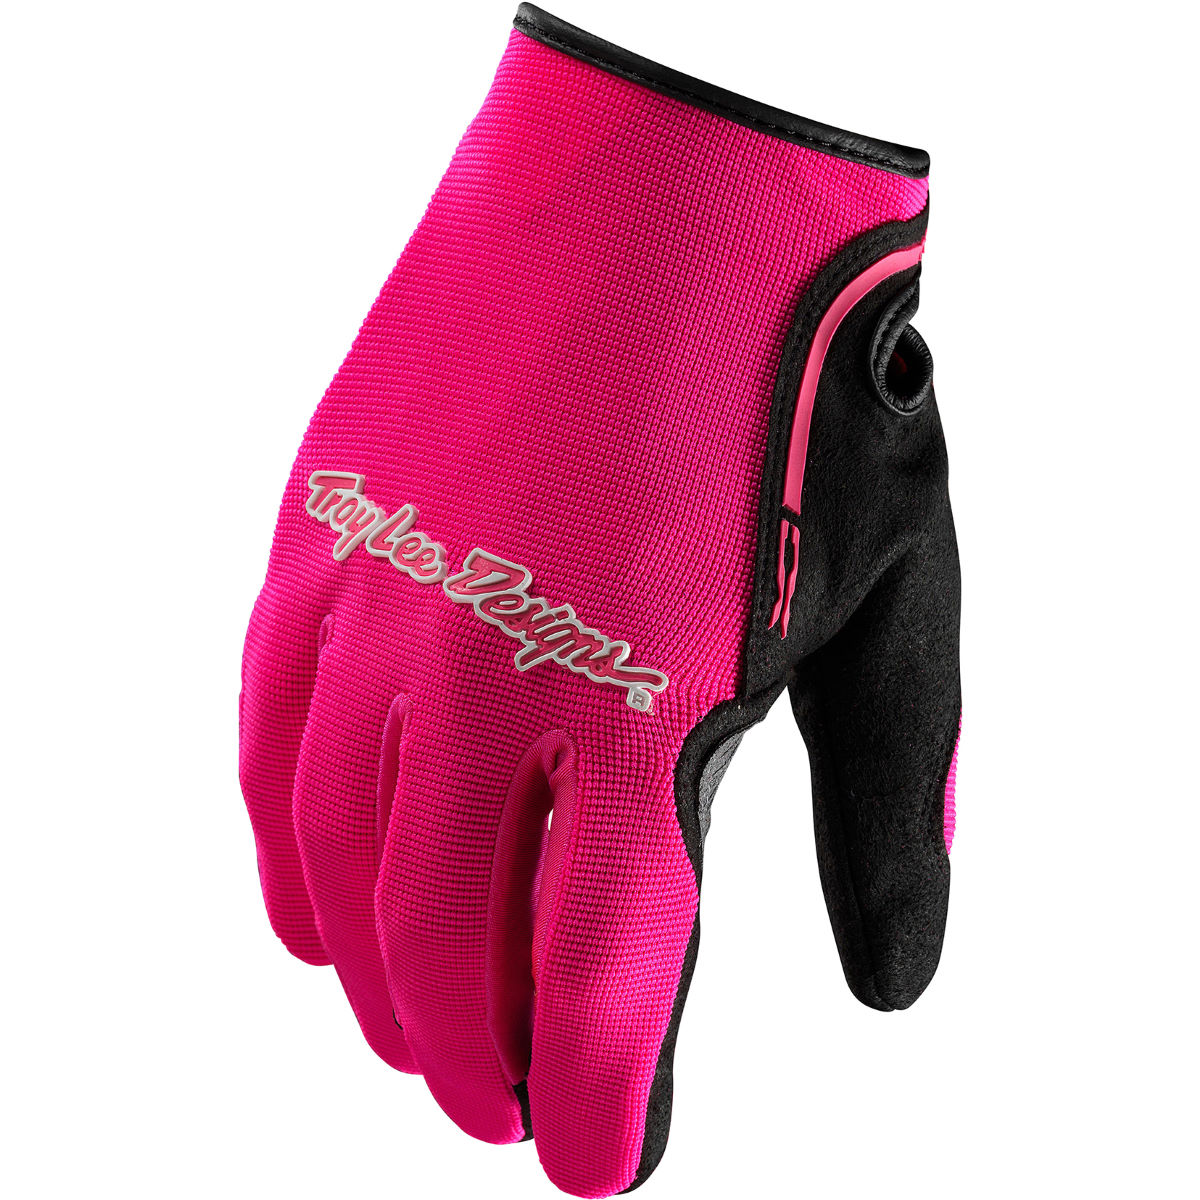 Gants Troy Lee Designs XC - XXL Rose Gants